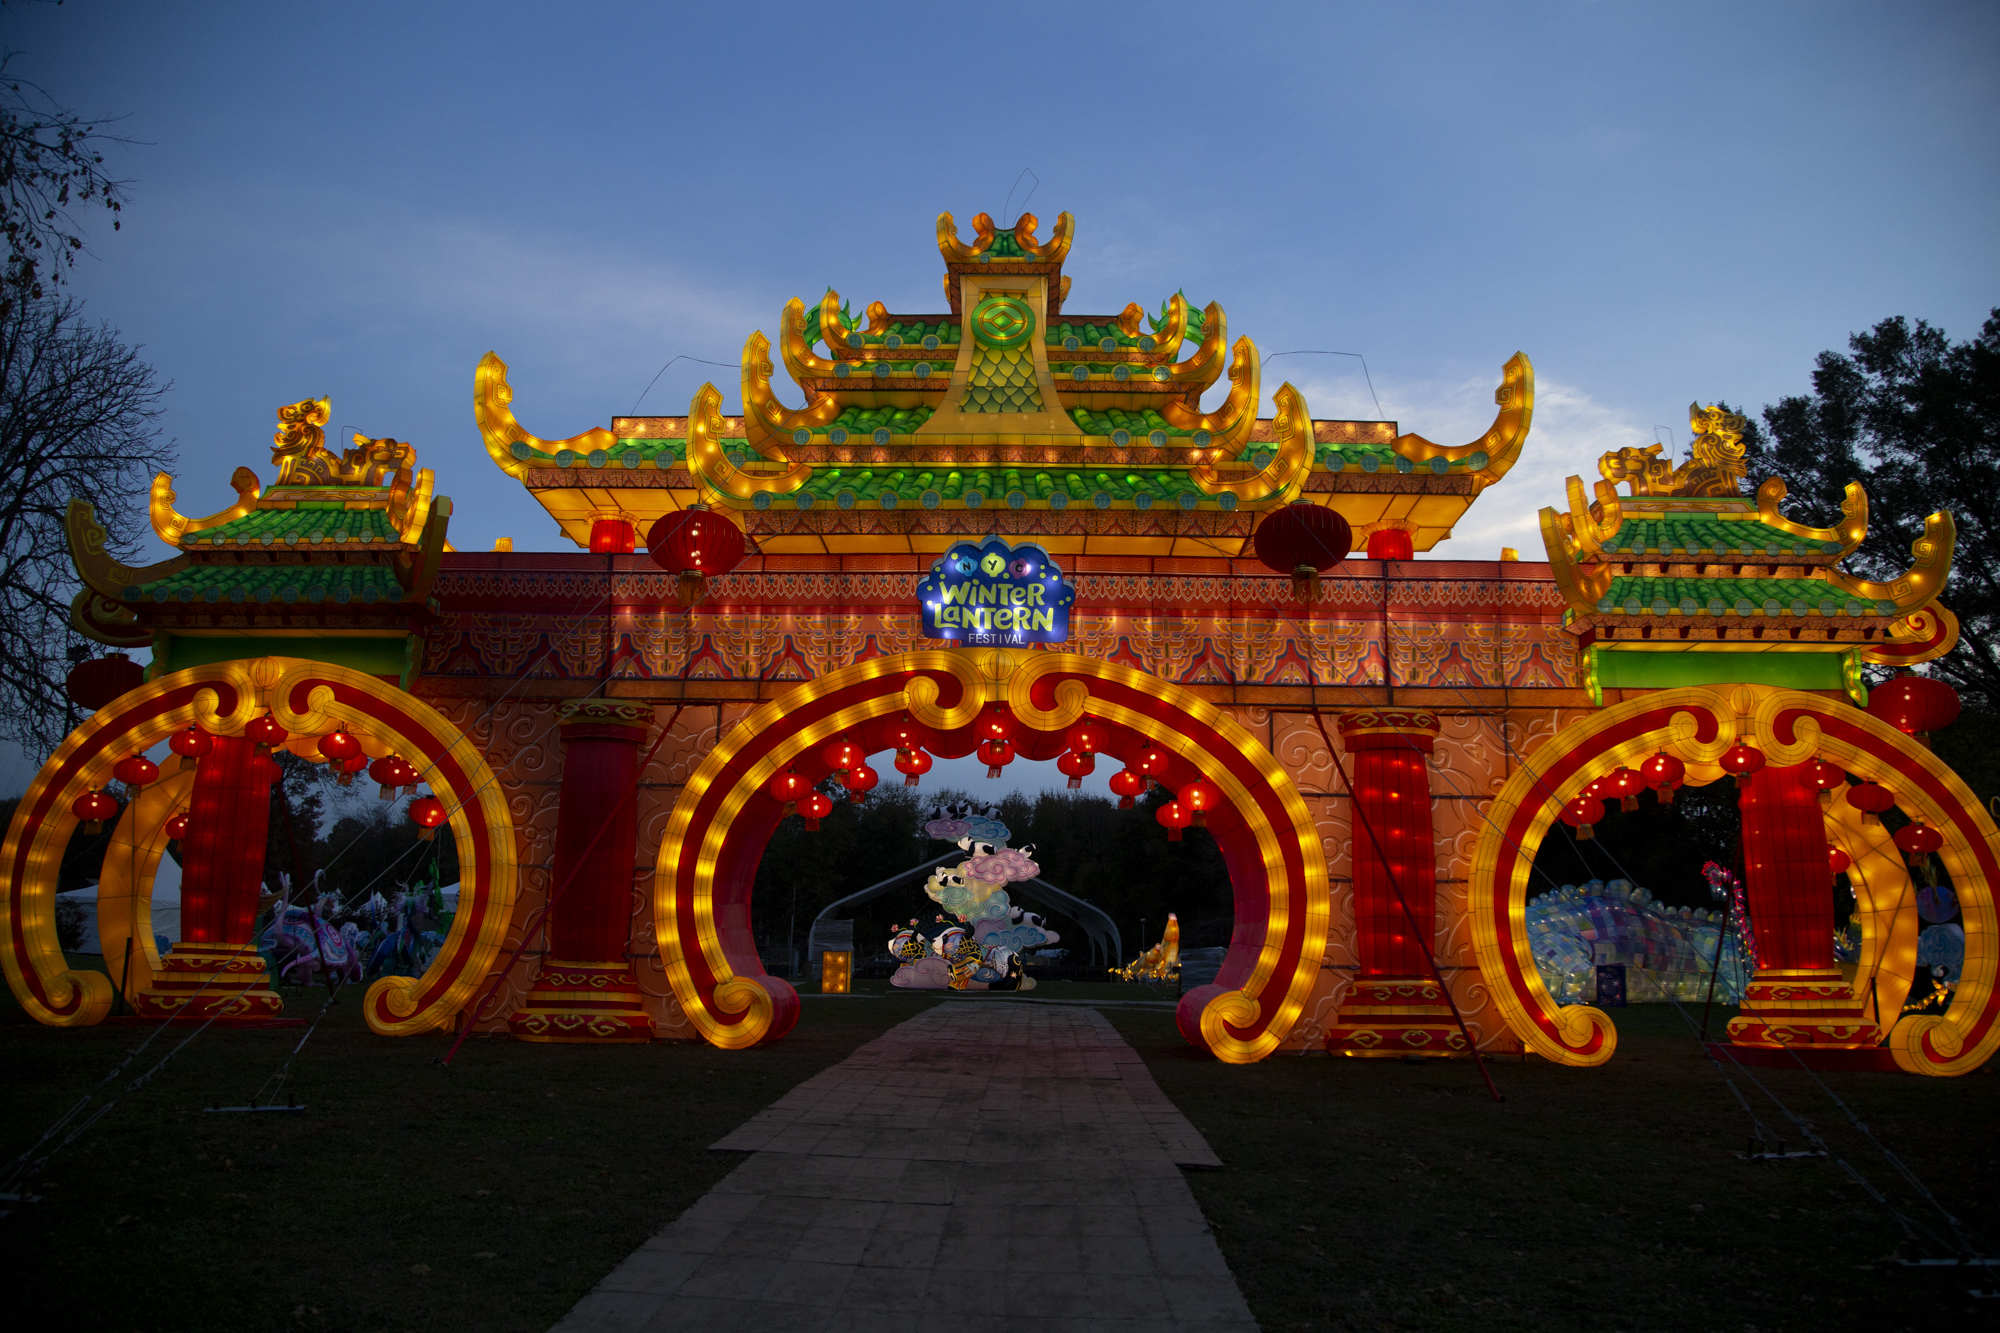 NYC Winter Lantern Festival 2019: Tickets, dates, times, parking options